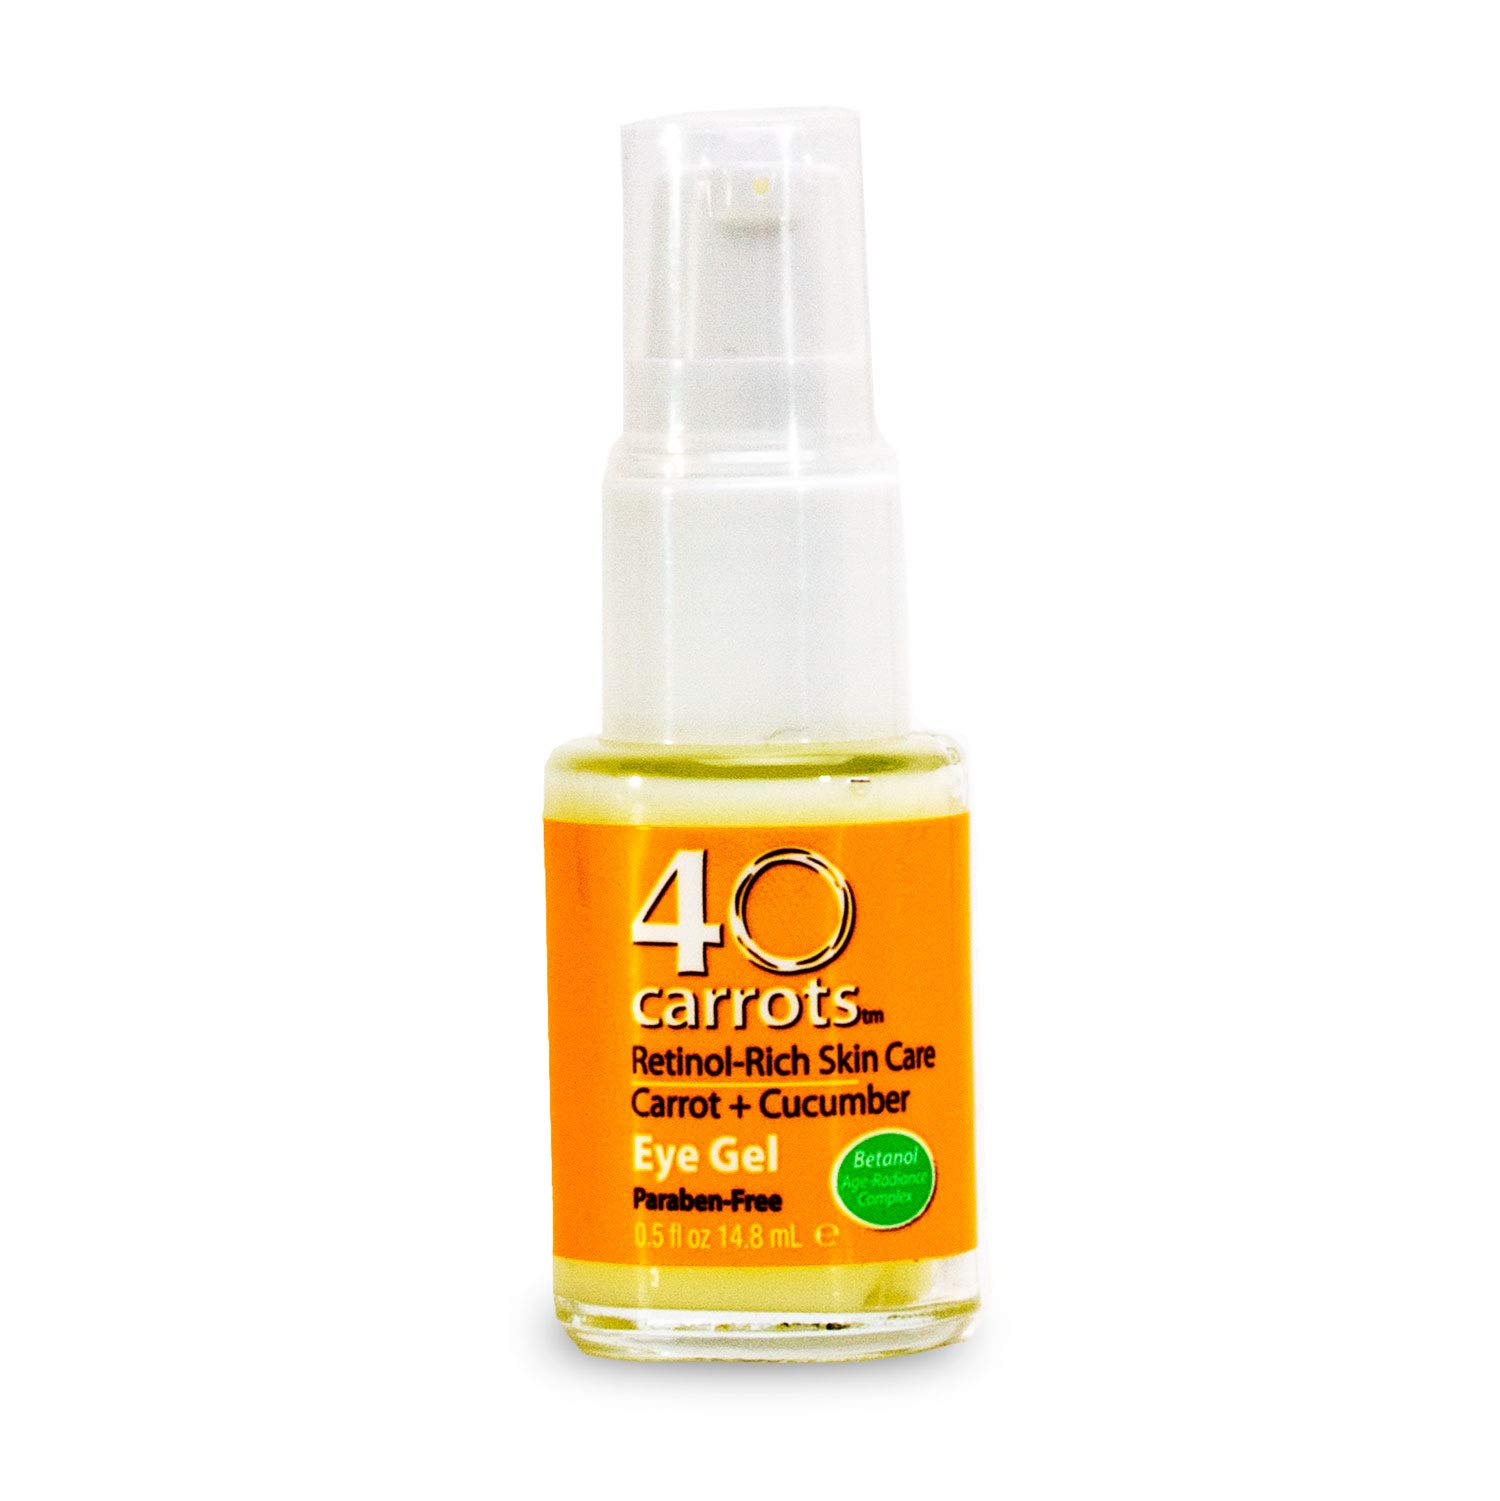 40 Carrots Carrot and Cucumber Eye Gel - Instantly De-ages and Wakes Up Tired Looking Eyes, Paraben Free (5 oz) by 40 Carrots